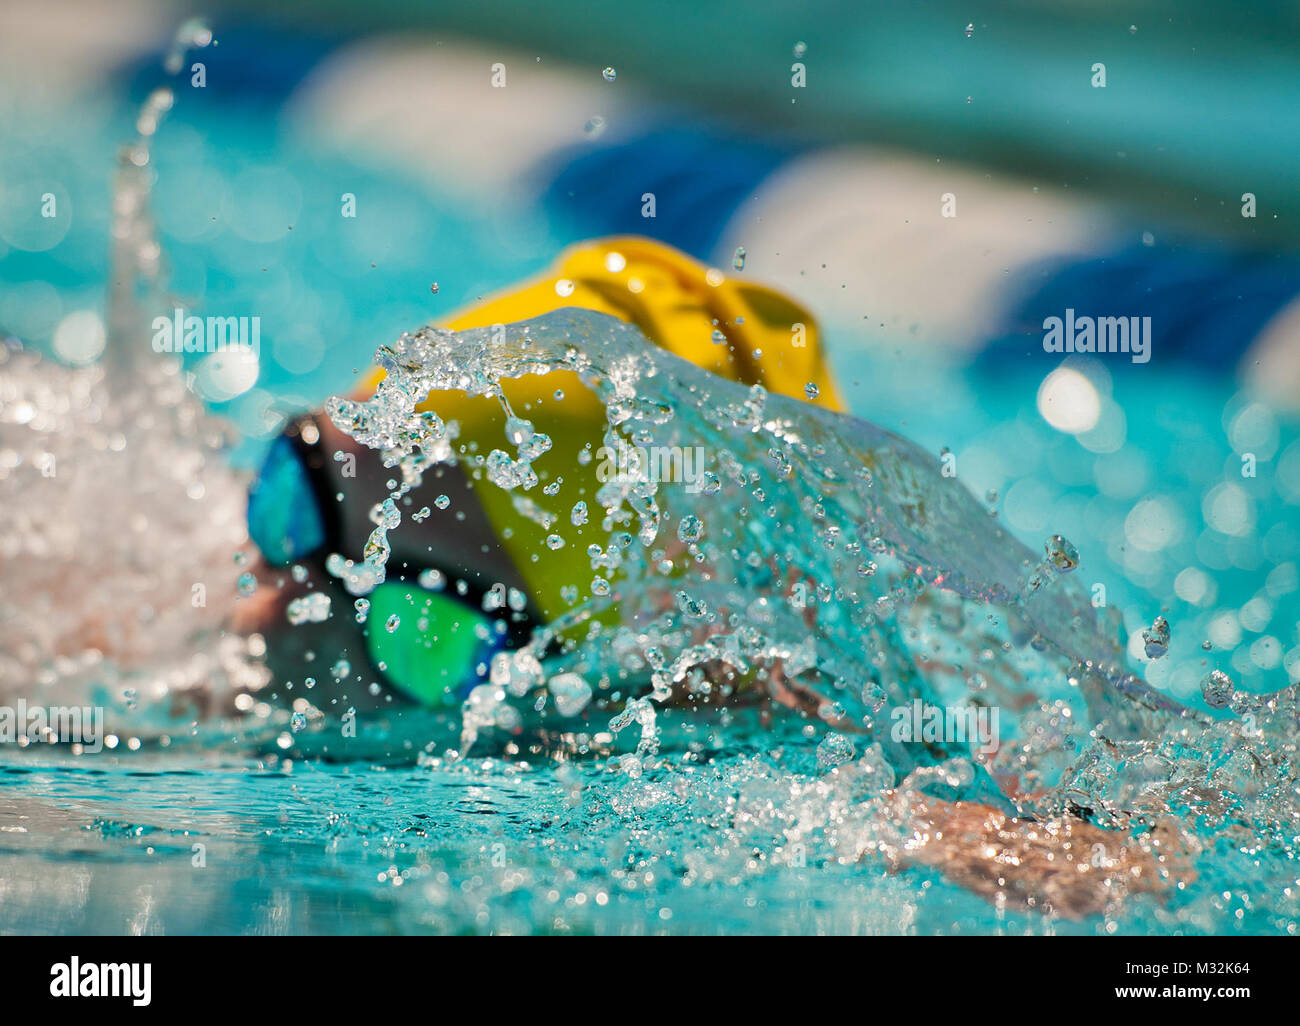 Hanna Stulberg, a Warrior CARE attendee, swims laps during an afternoon training session at the adaptive sports - Stock Image